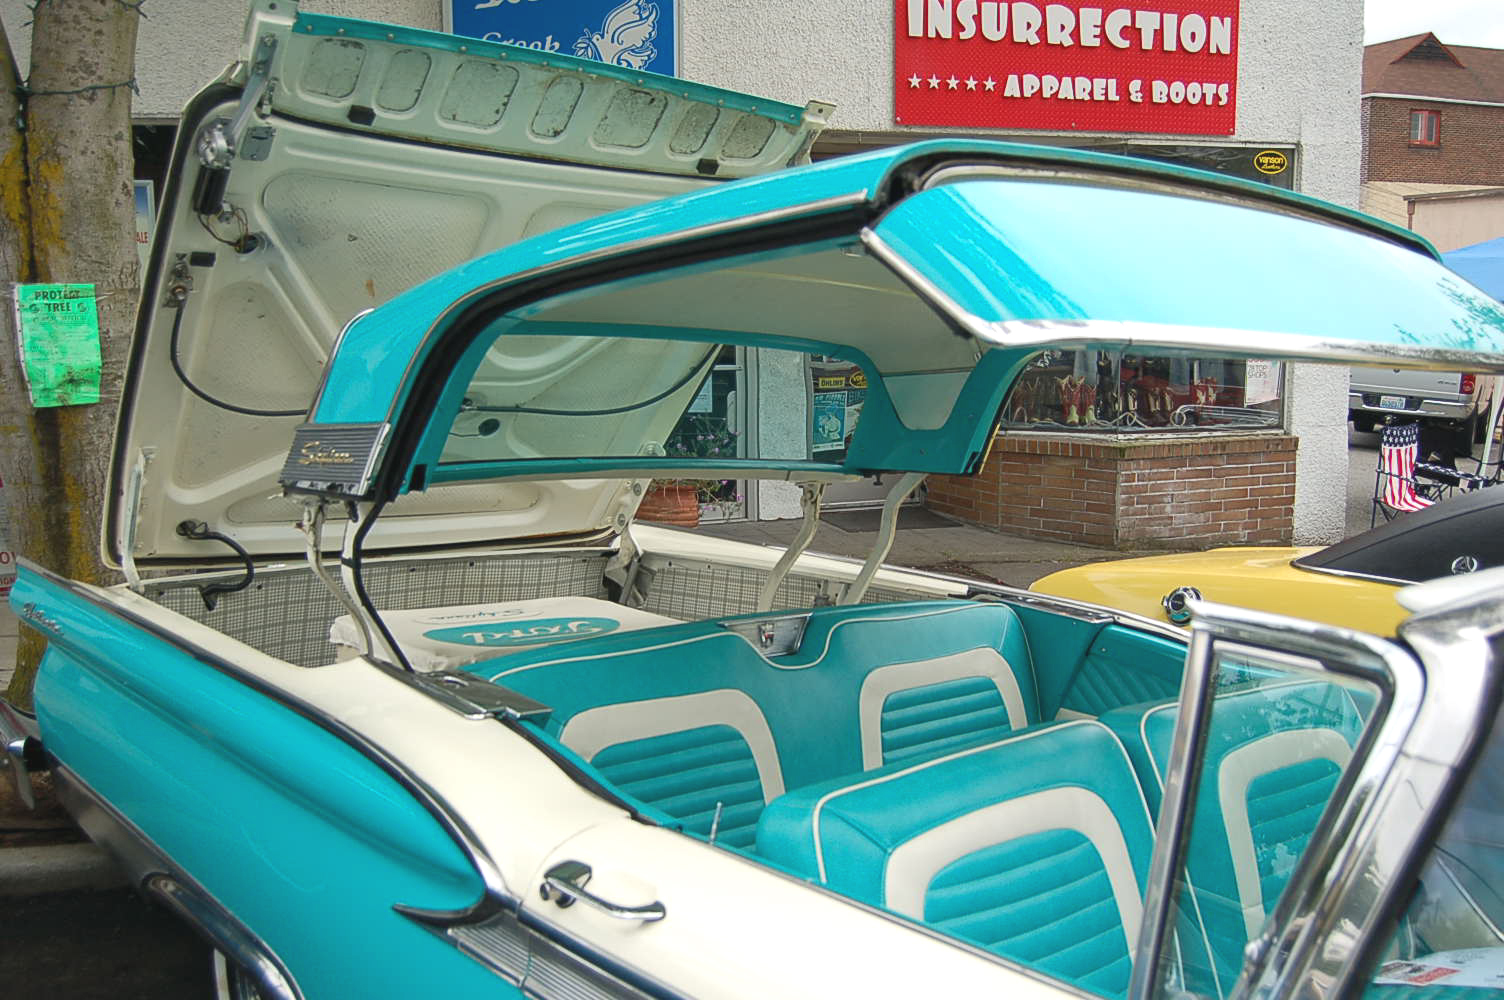 1957 Ford Fairlane Retractable Top Wiring Diagram Library 57 Chevy Convertible Vintage 1959 Galaxie Mechanism